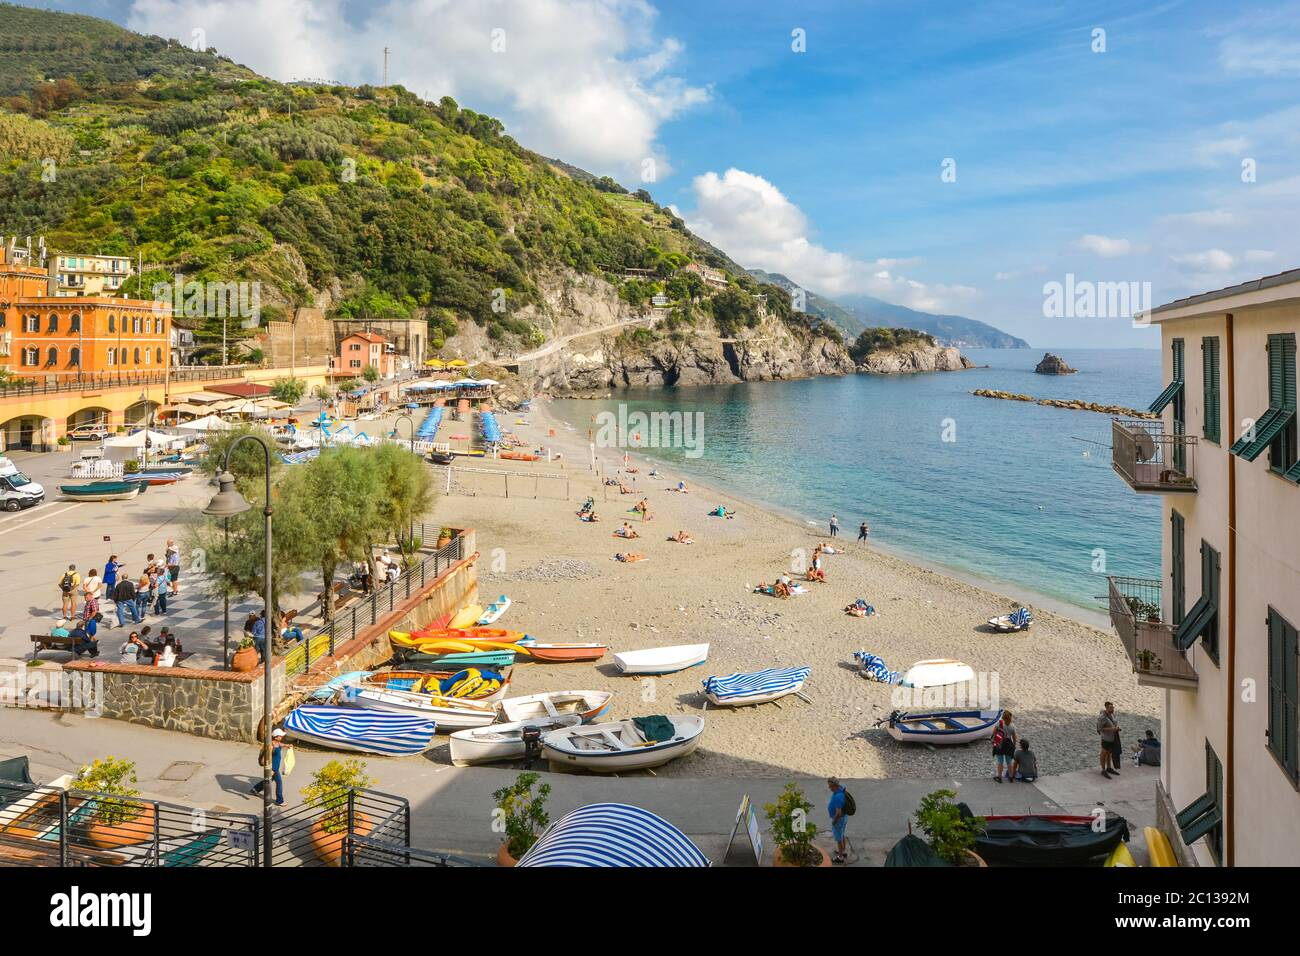 Sandy beach and clear blue water on the old side of the village of Monterosso Al Mare on the Ligurian coast of Cinque Terre, Italy. Stock Photo